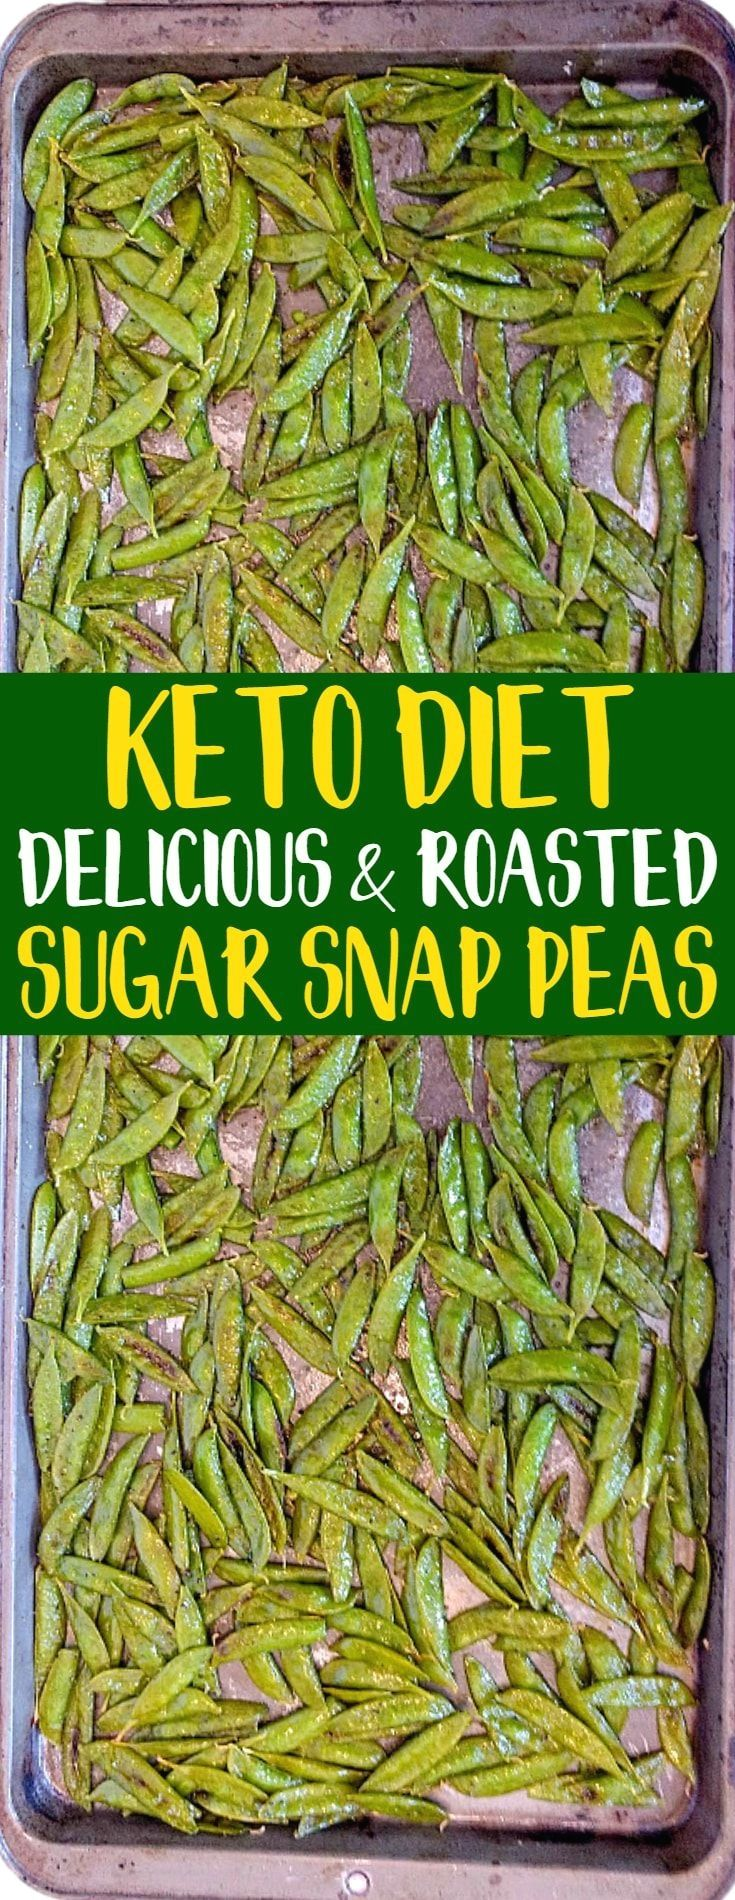 KETO Olive Oil Roasted Sugar Snap Peas! They are super healthy and SO addicting …